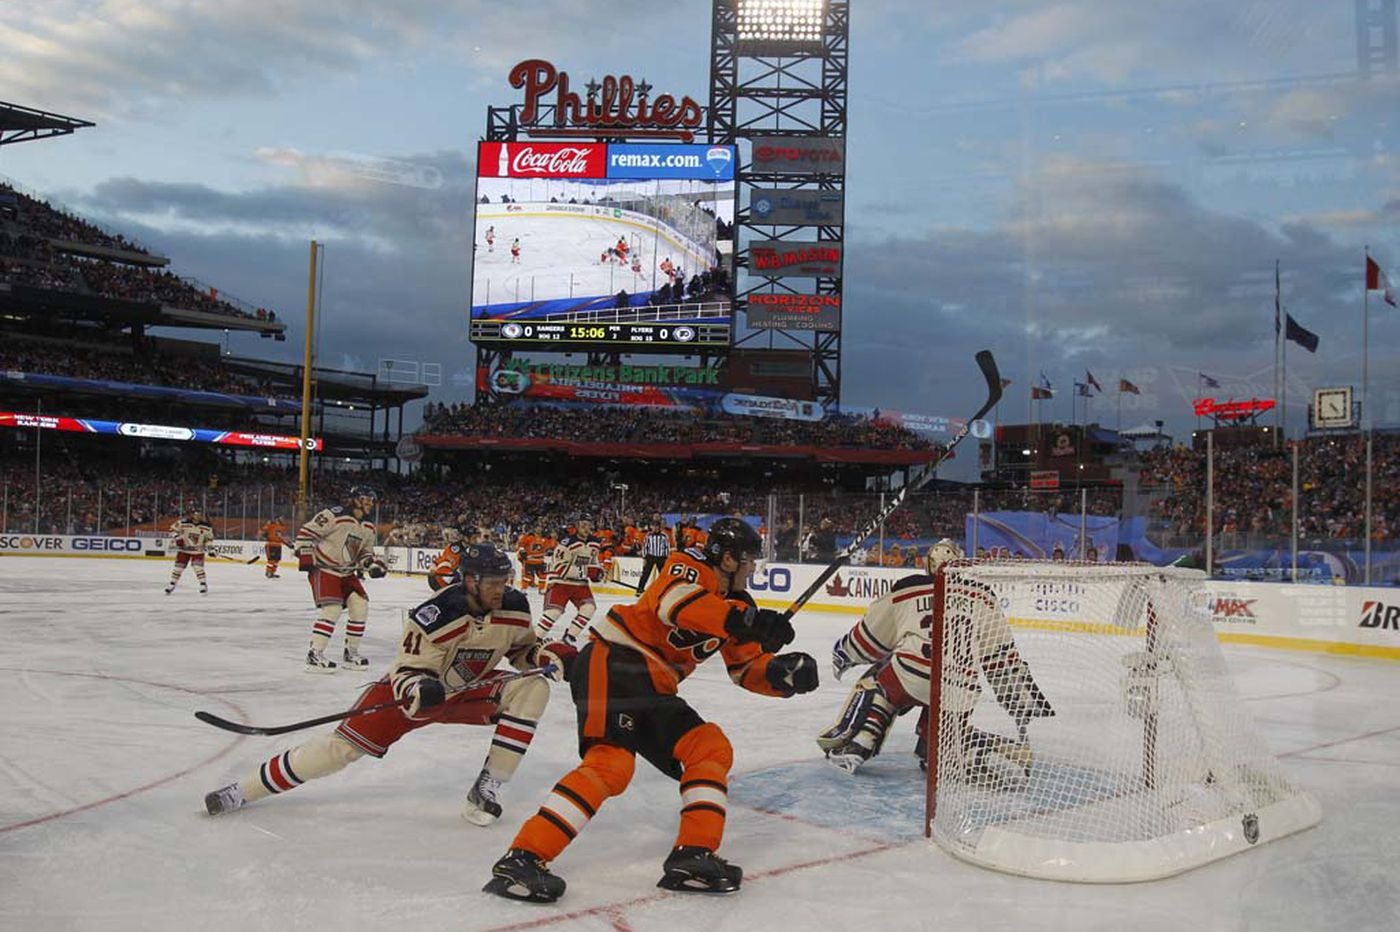 Test your knowledge with this quiz on the Flyers and their outdoor games